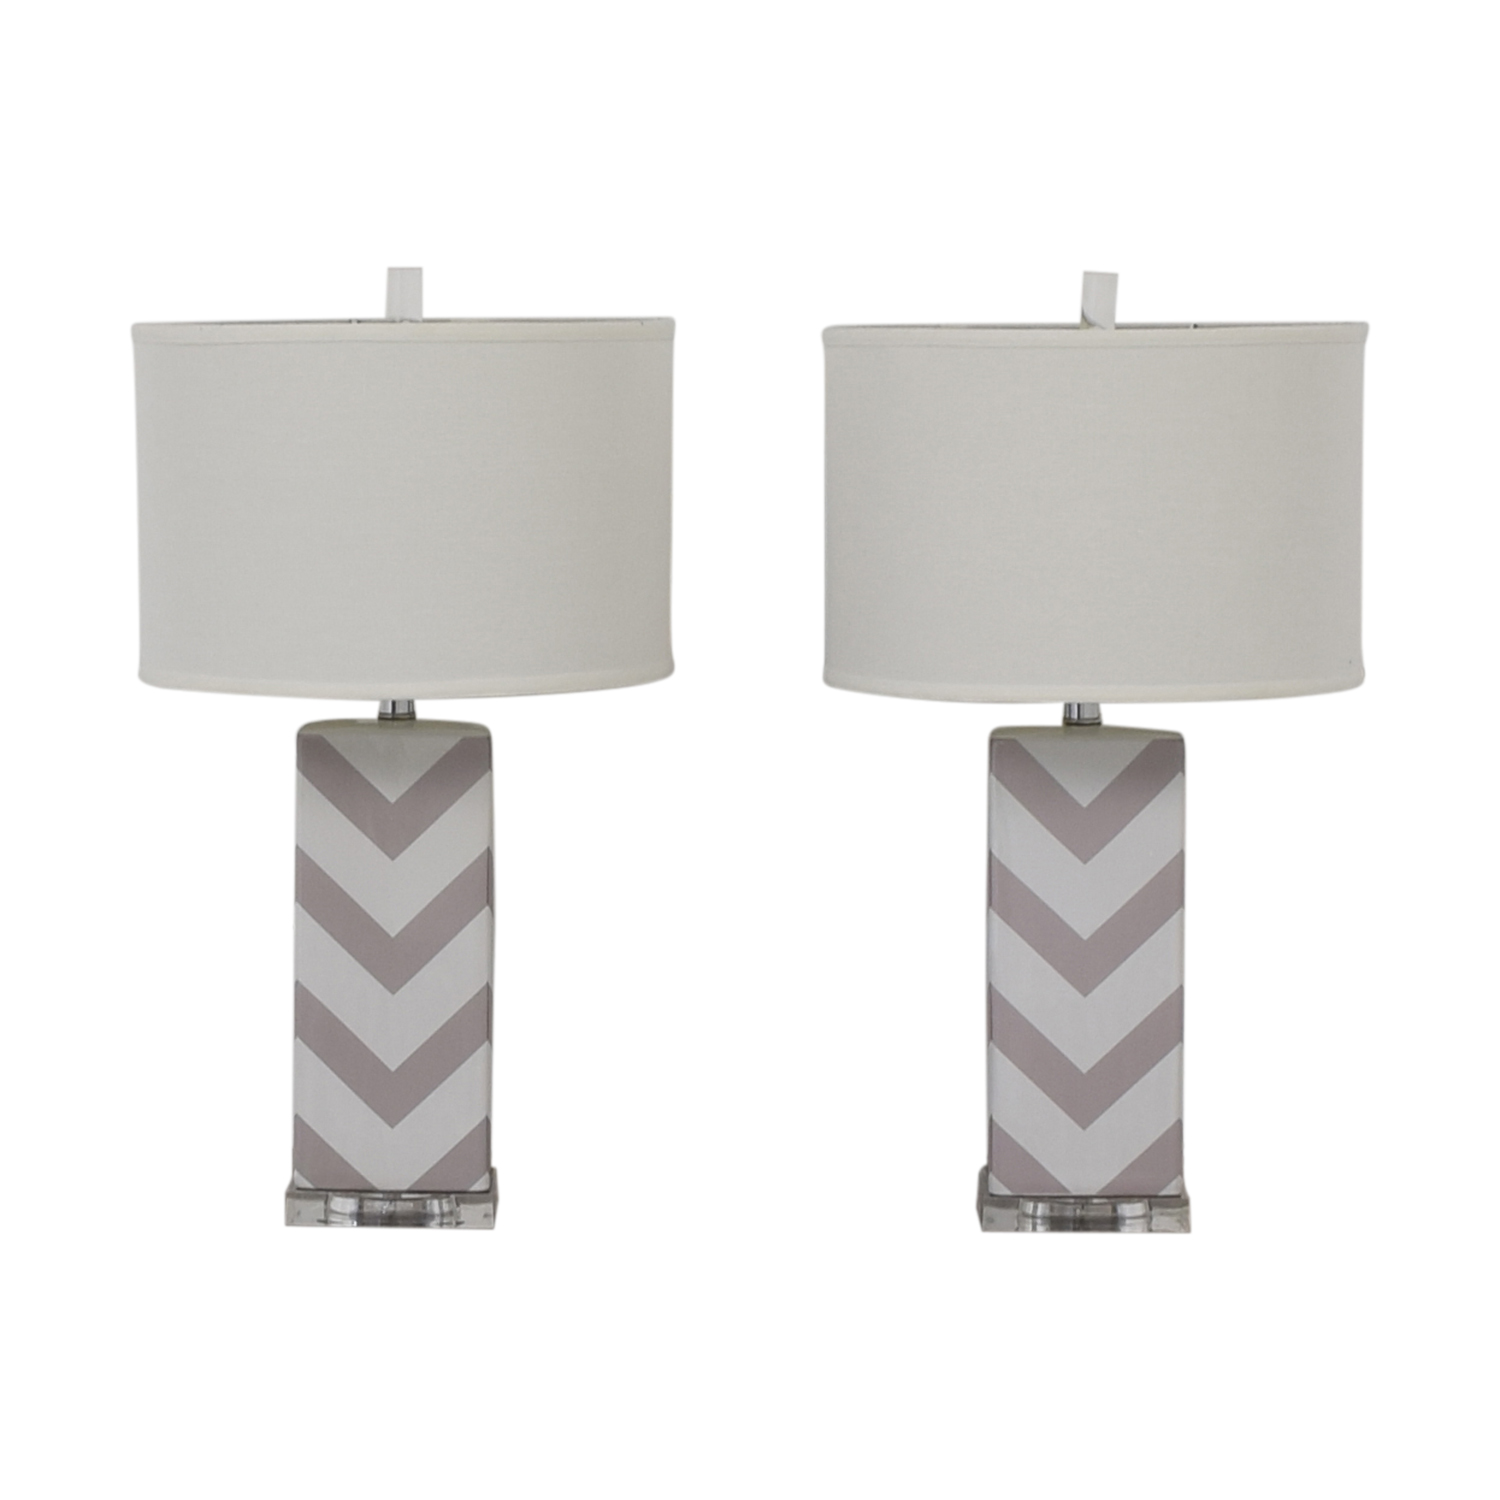 Safavieh Safavieh Chevron Strip Table Lamps nyc